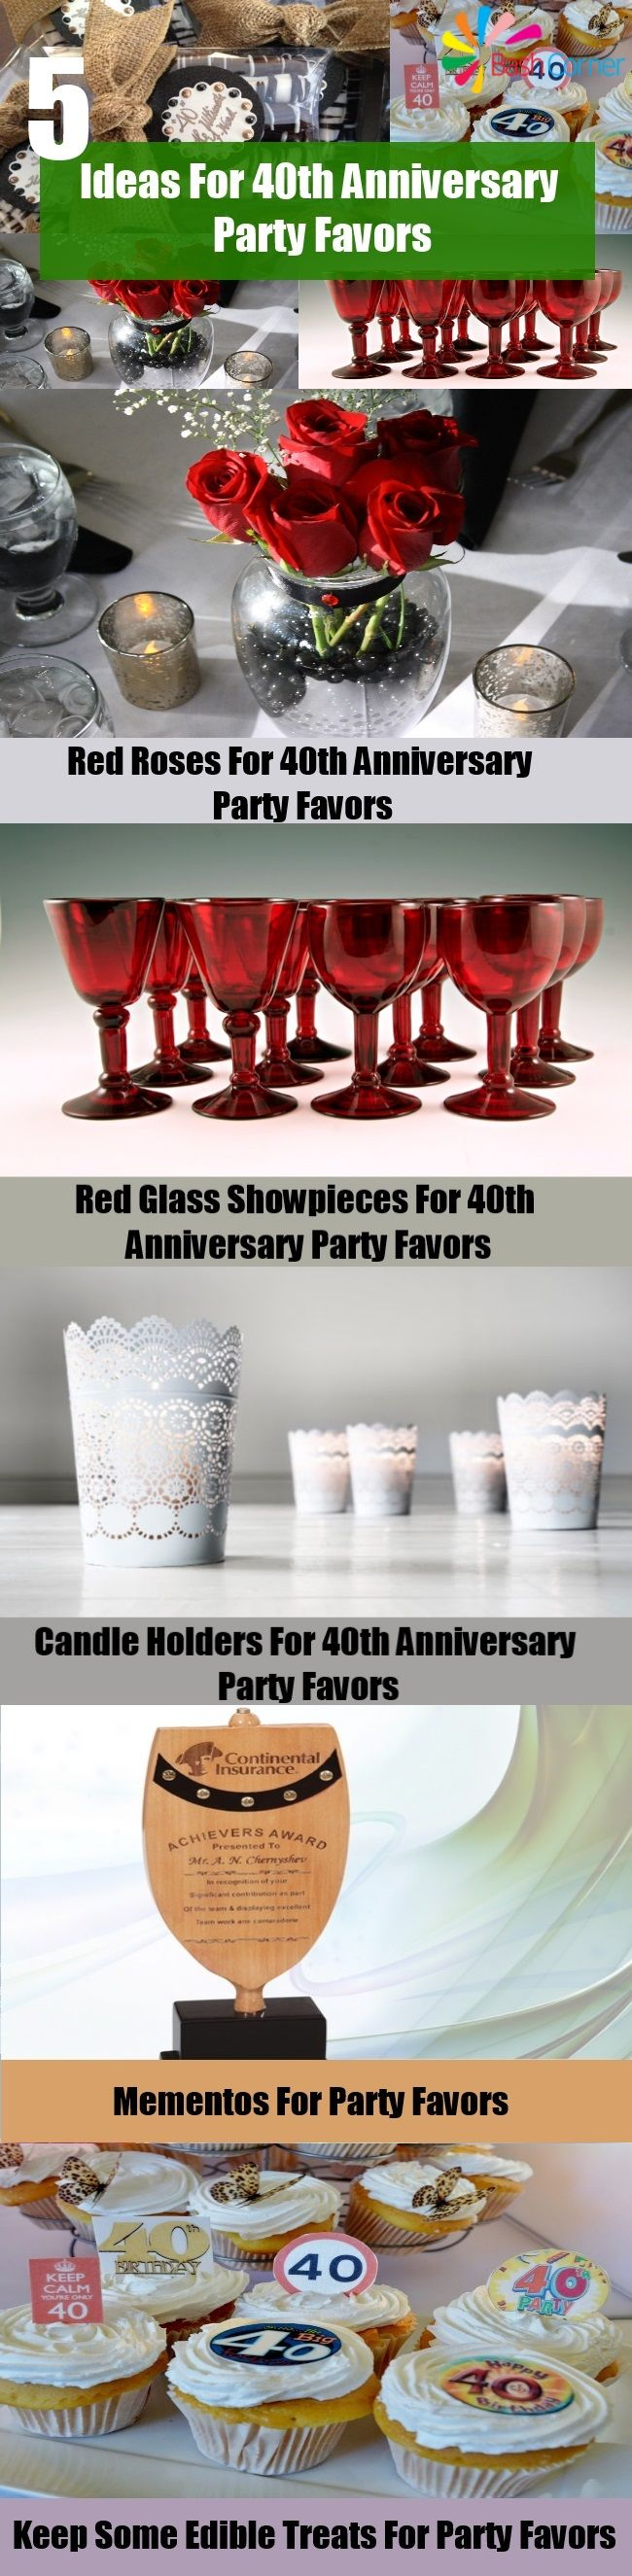 5 Ideas For 40th Anniversary Party Favors